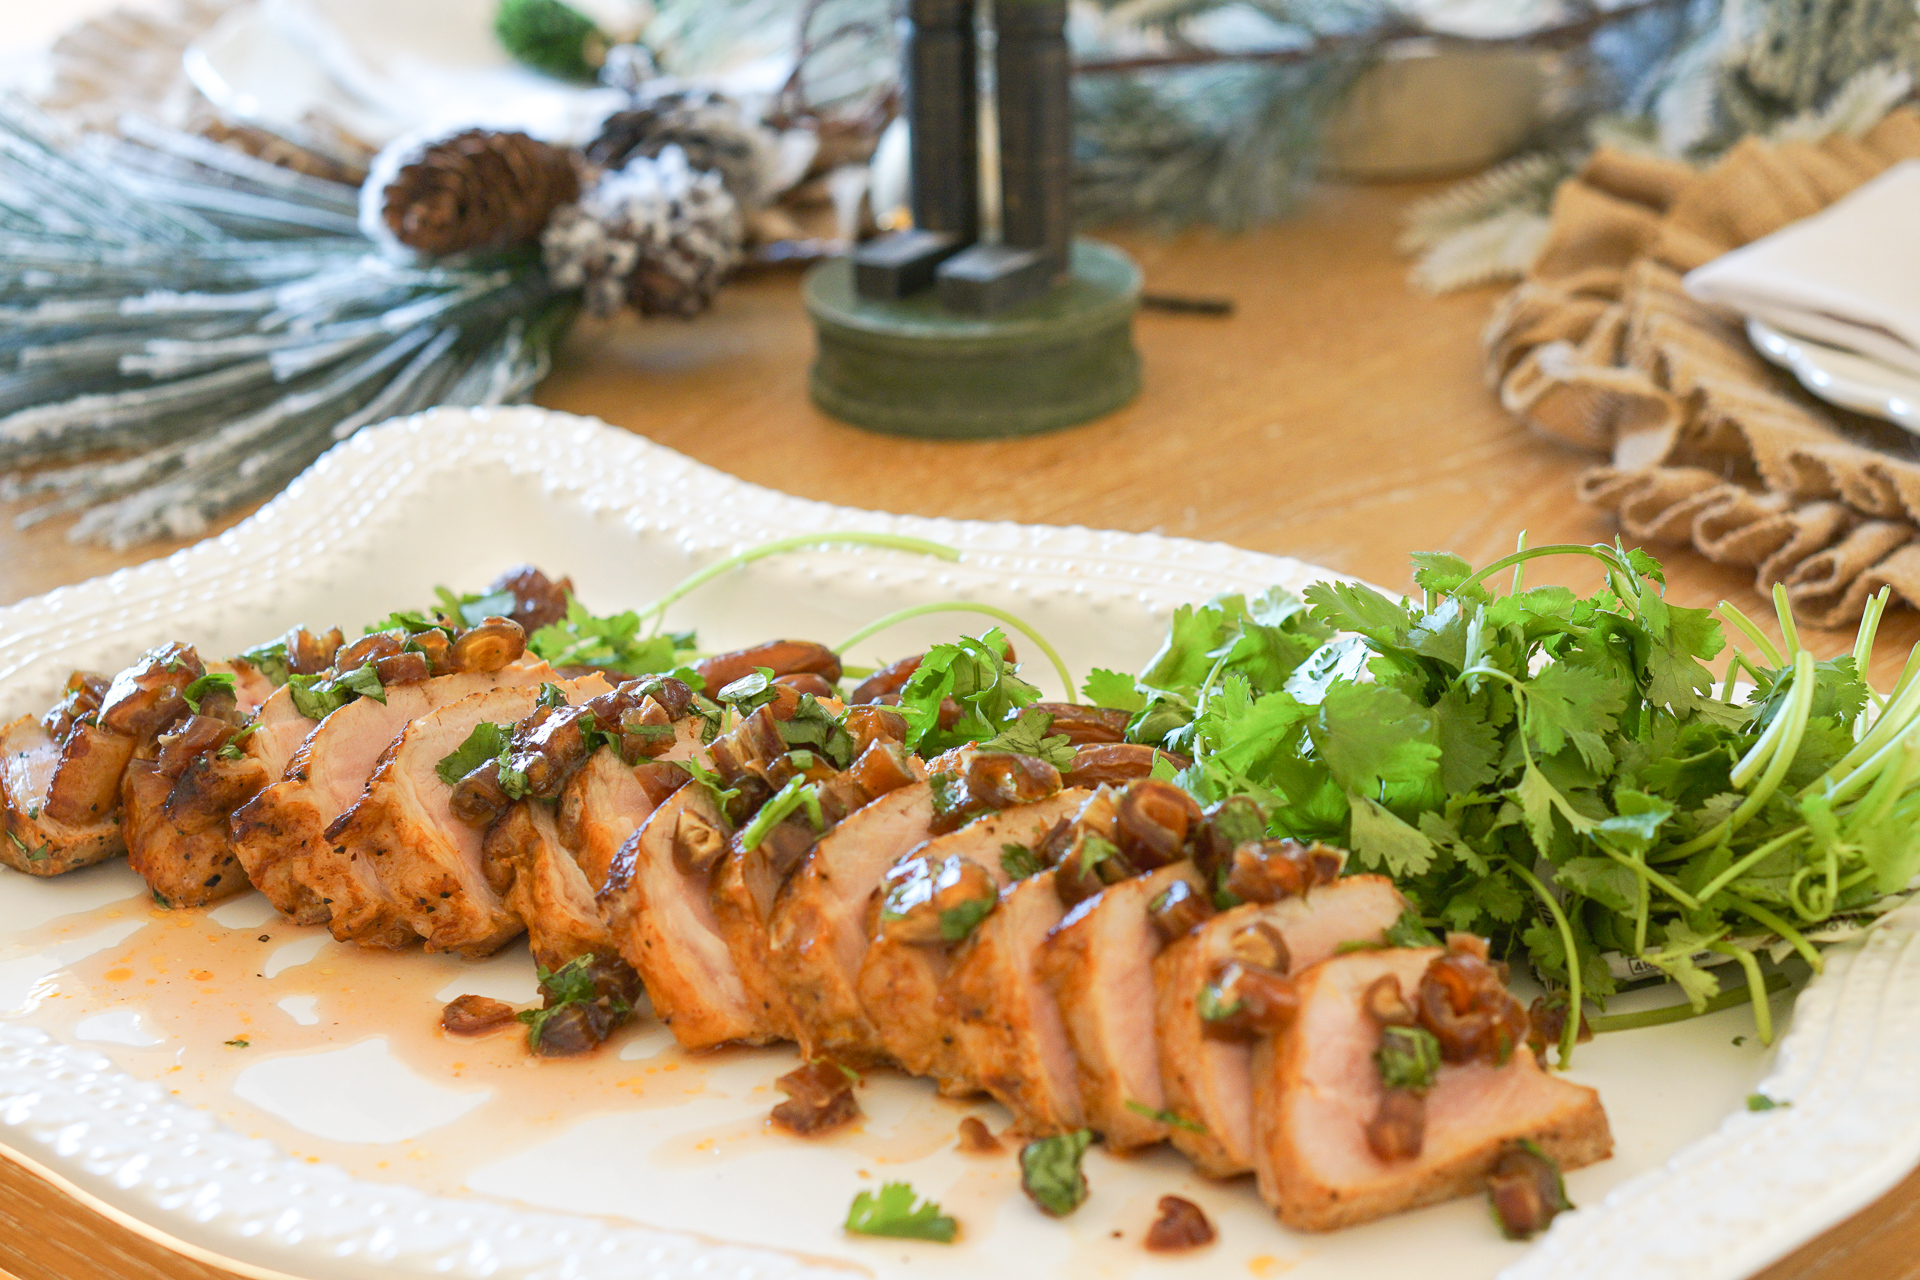 Holiday Pork Loin Filet with Cilantro & Date Relish